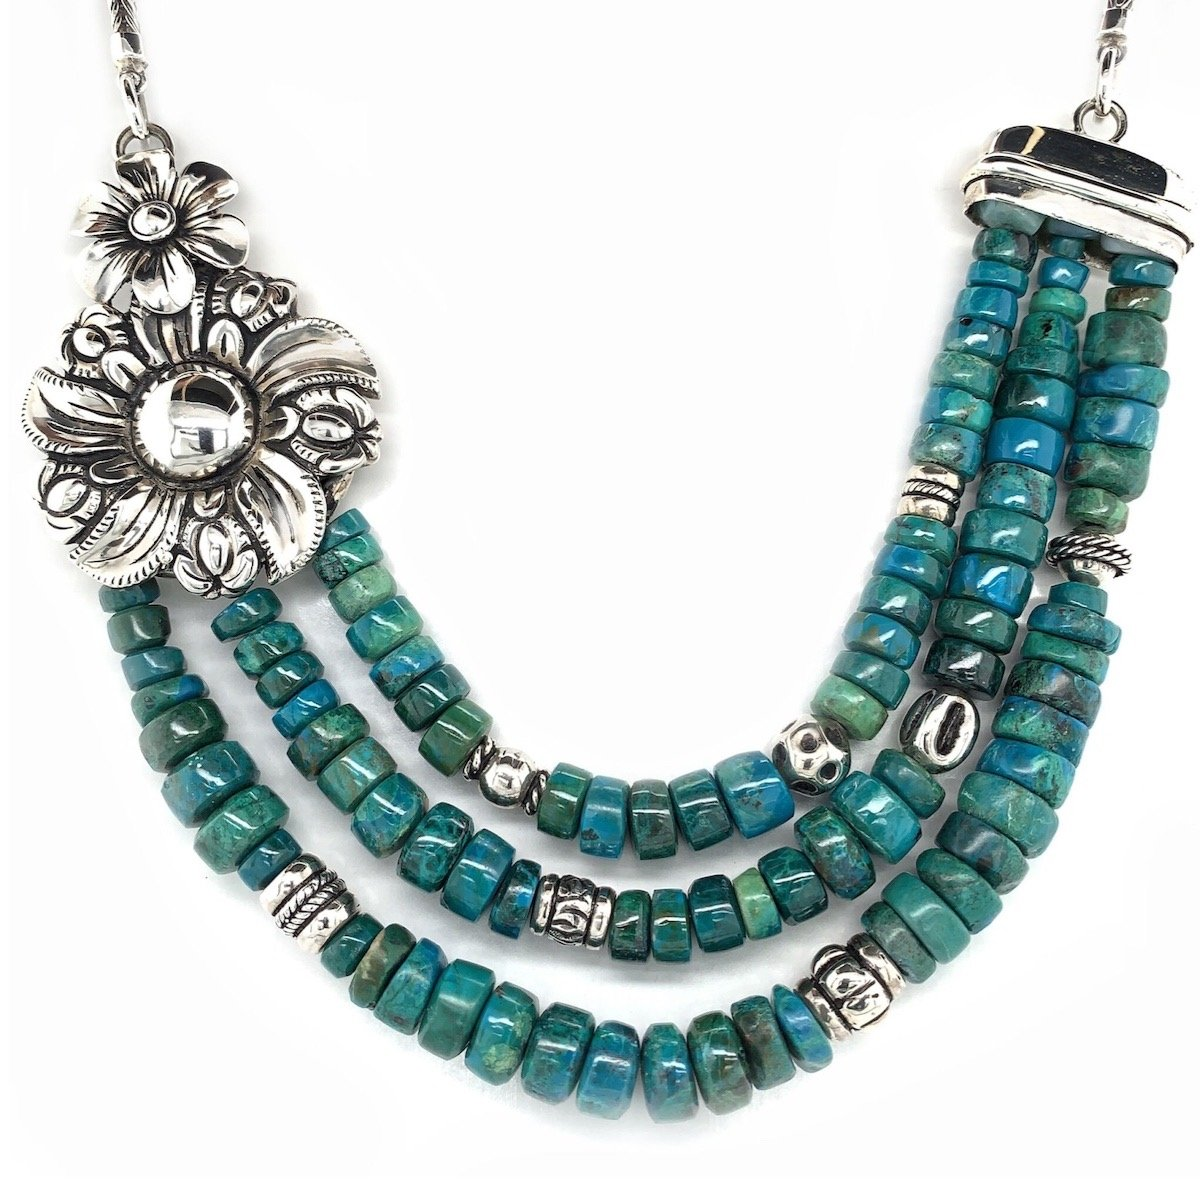 Chrysocolla Beads and Coralina Flower Sterling Silver Necklace - Qinti - The Peruvian Shop